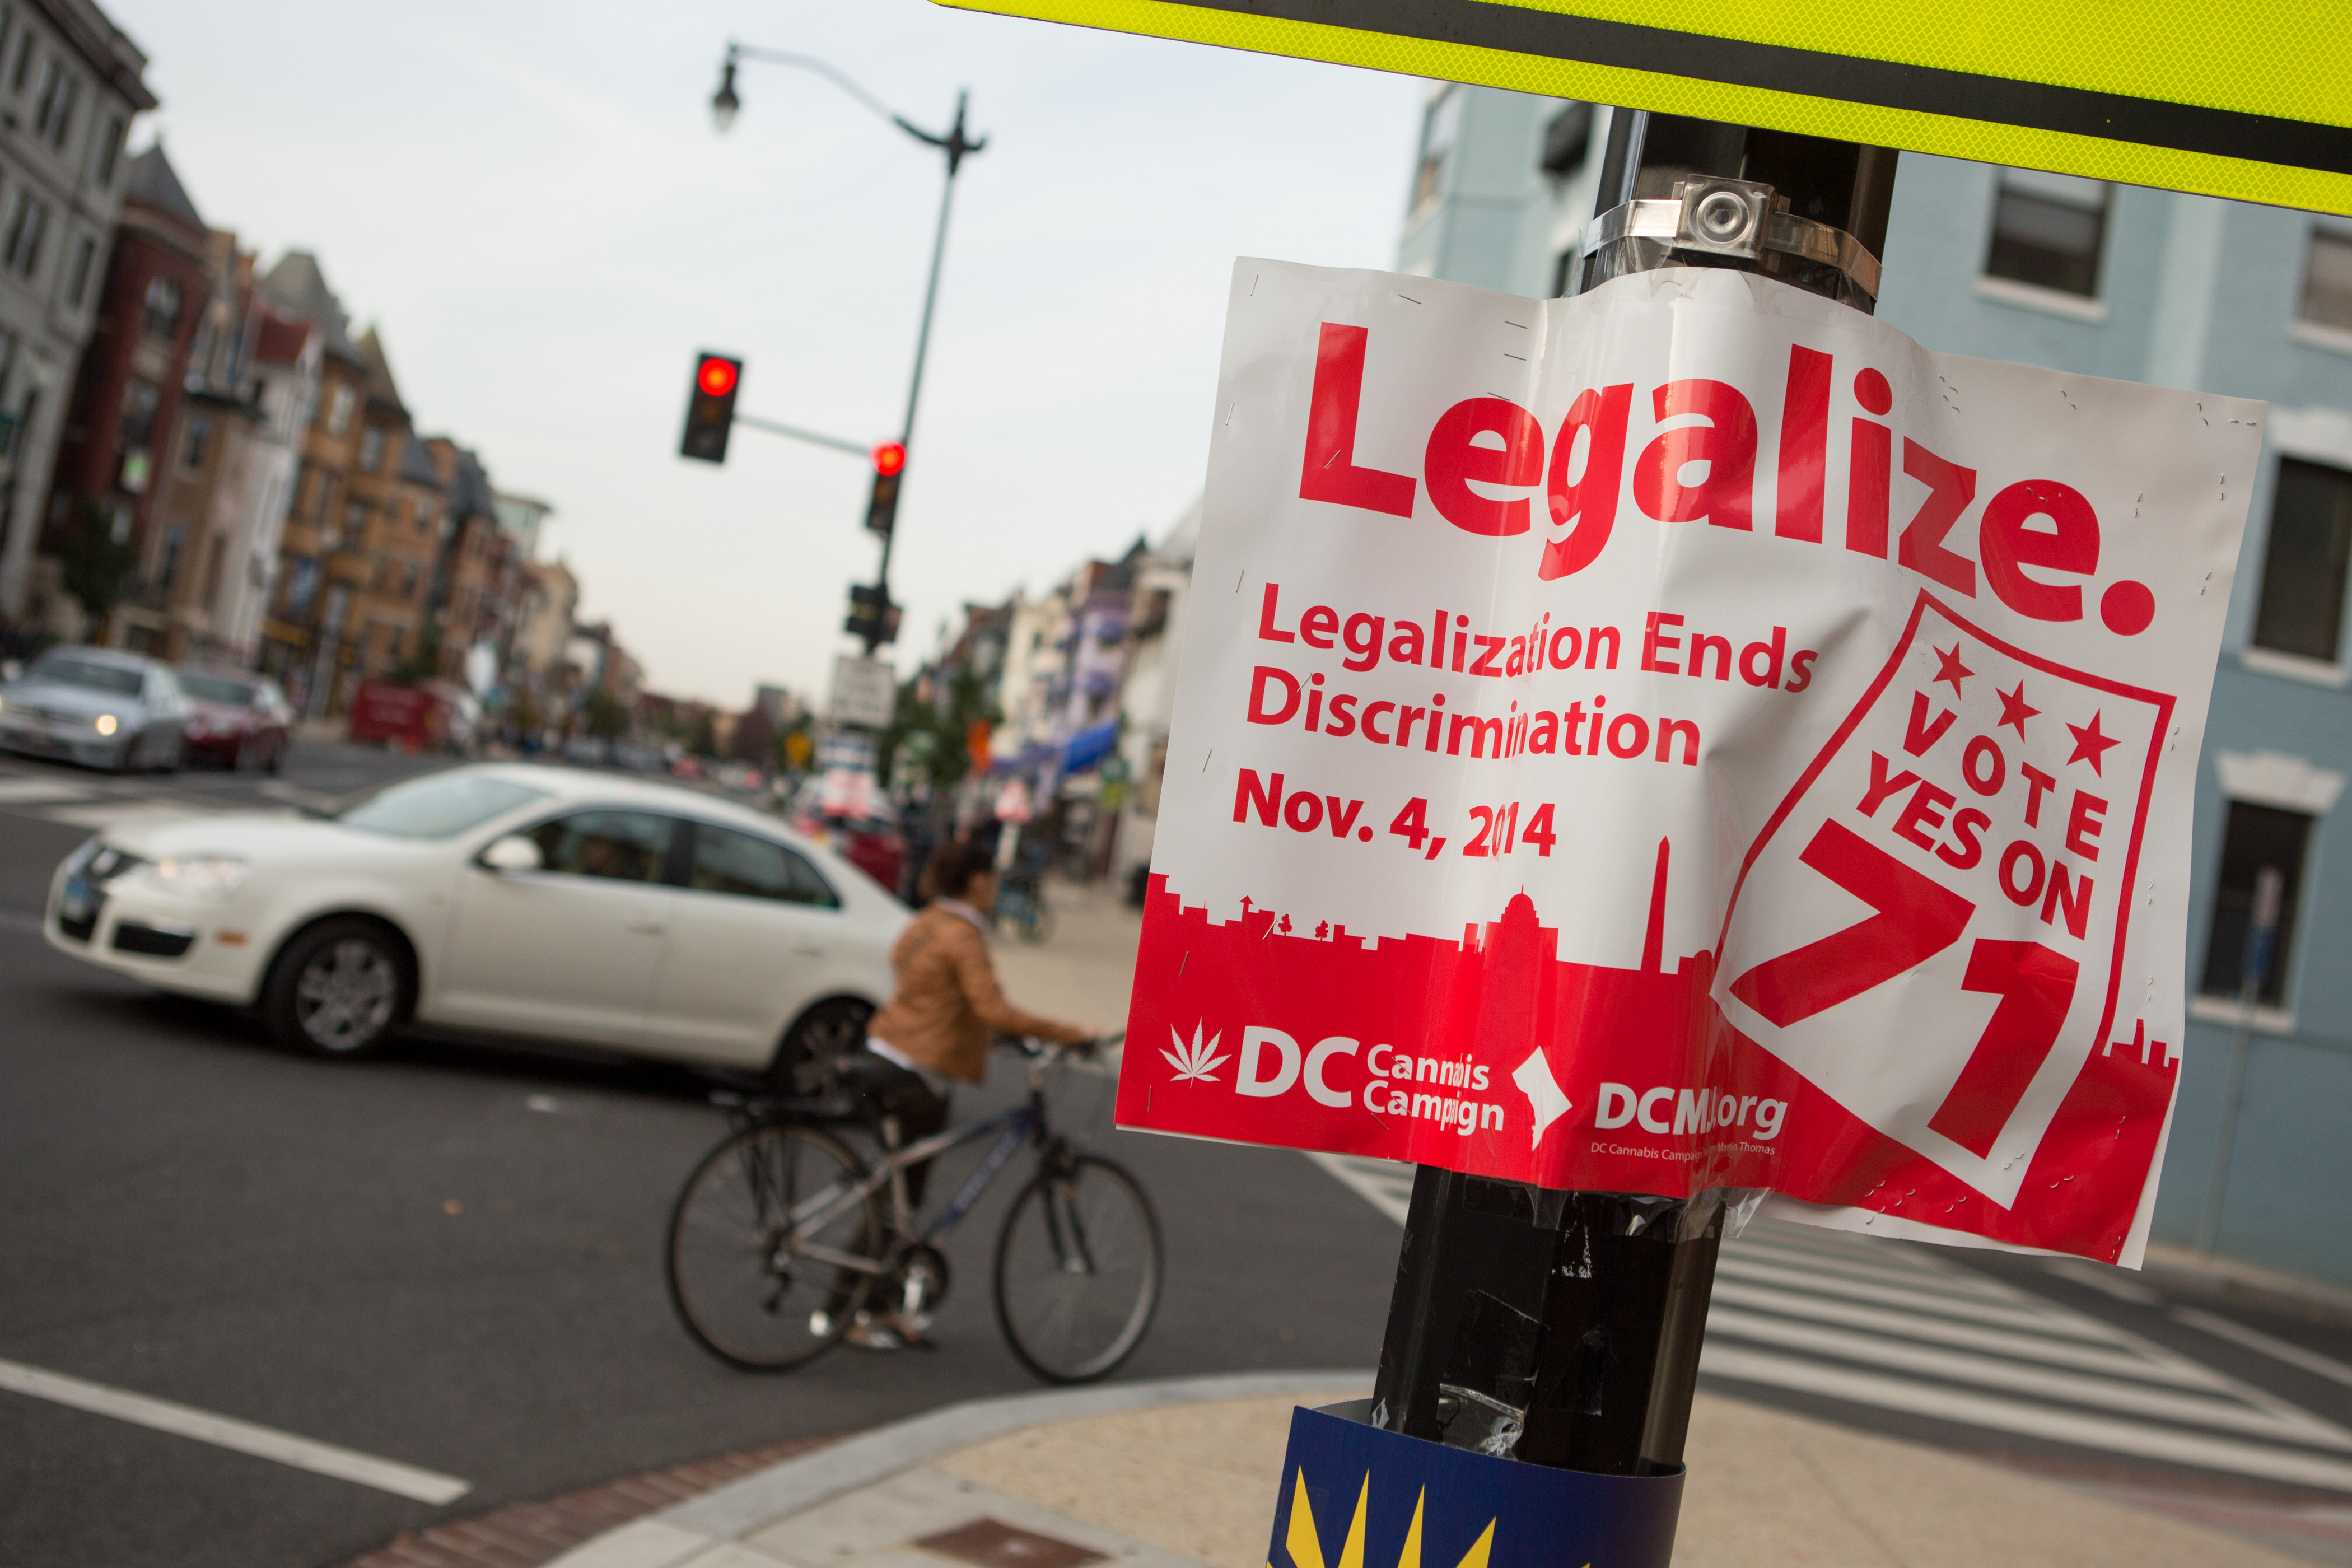 Washington, D.C.'s Legalized Weed Battle Comes Down to Word 'Enact'